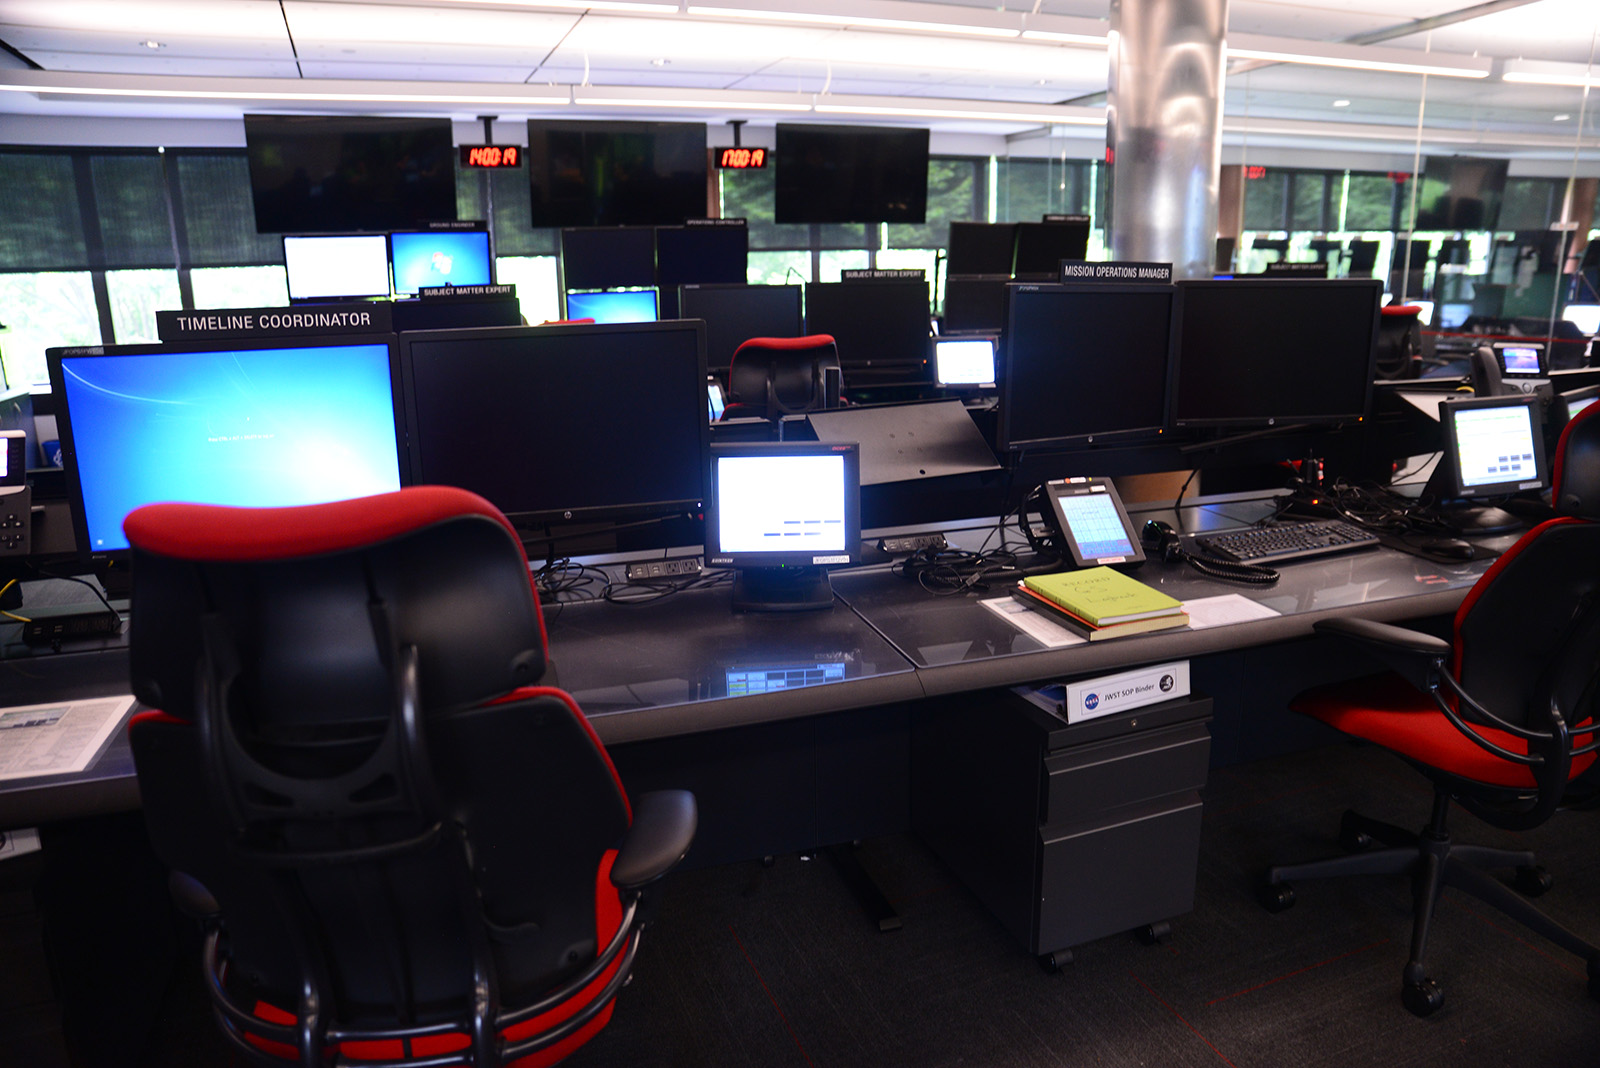 James Webb Space Telescope mission control room.